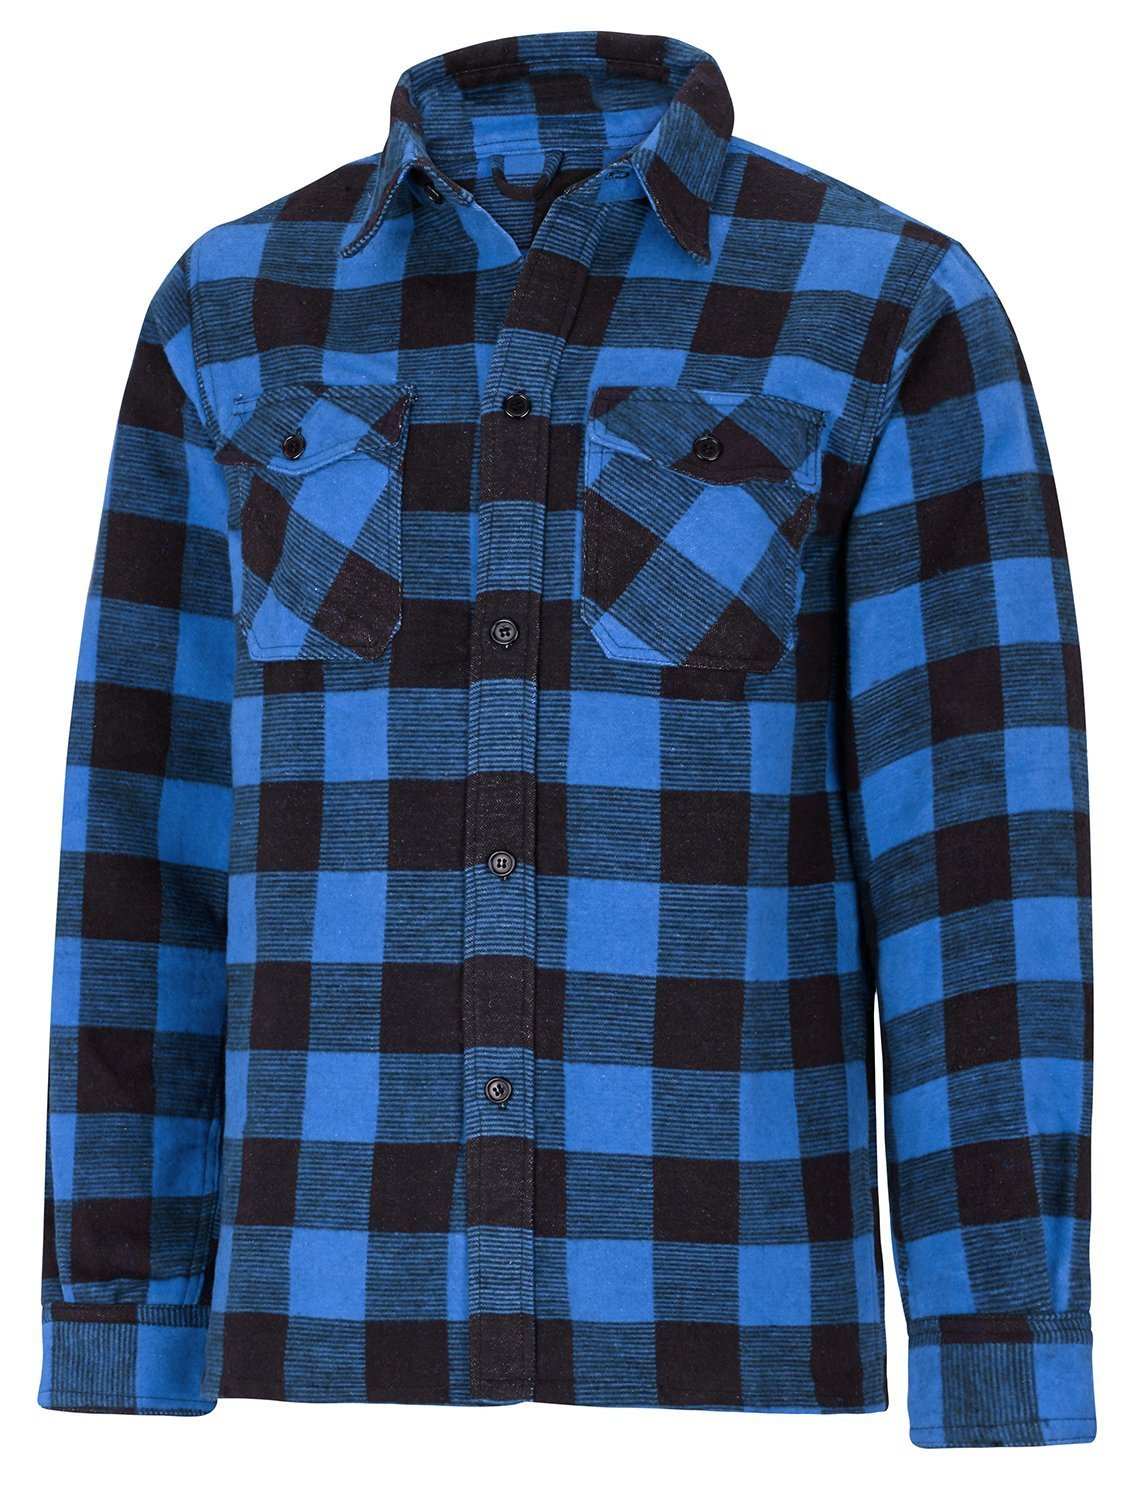 Mil-Tec Outdoor Lumberjack Shirt Black/Red